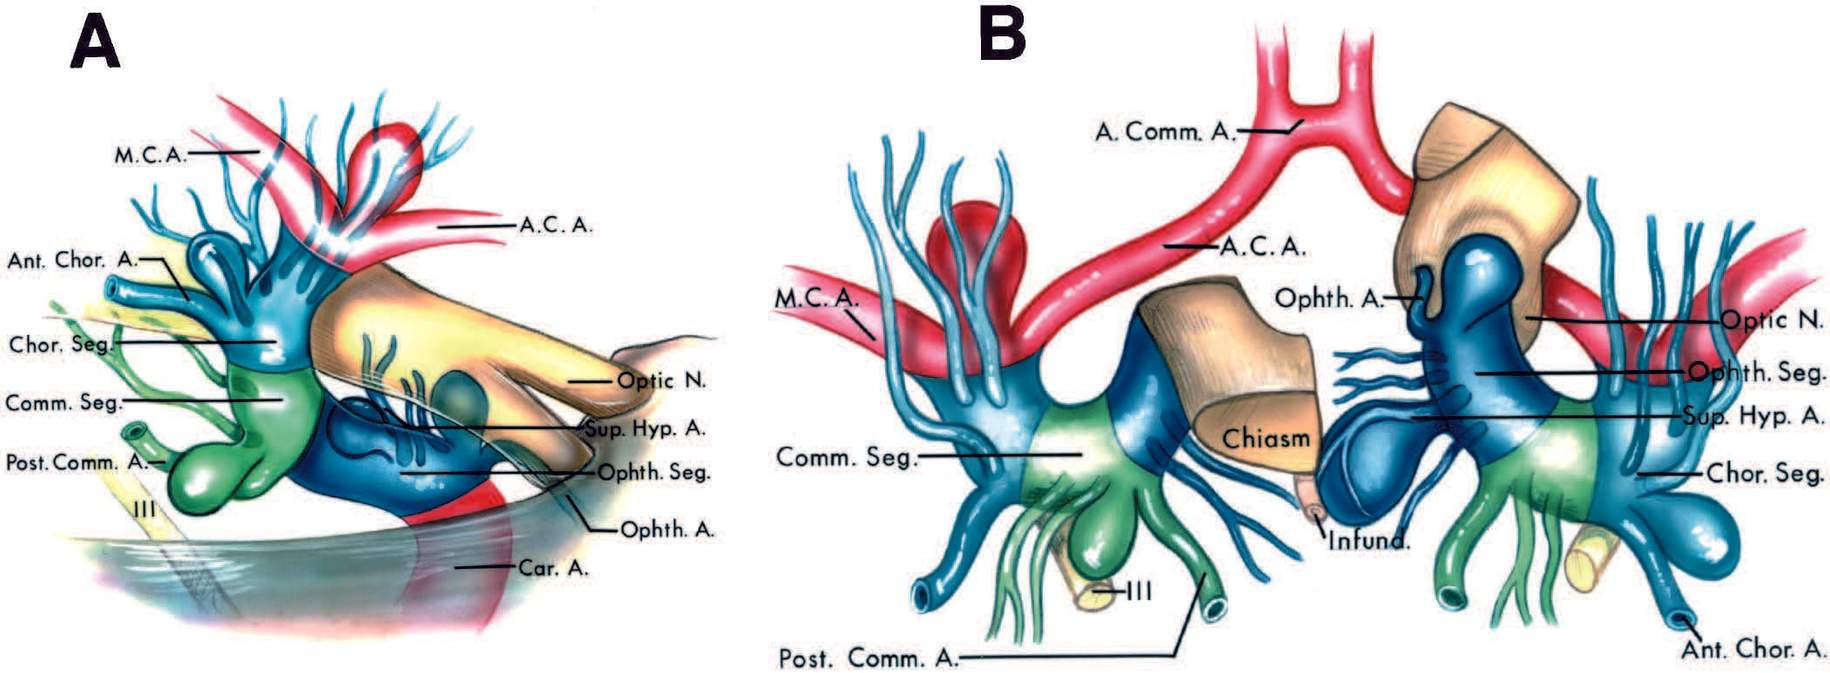 FIGURE 3.5. Perforating arteries at the common aneurysm sites on the supraclinoid portion of the internal carotid artery. A, lateral view. B, superior view, with the right optic nerve and right half of the optic chiasm reflected forward to expose the origin of the ophthalmic artery. A and B, ophthalmic aneurysms arise at the origin of the ophthalmic artery from the ophthalmic segment and point upward into the optic nerve. The perforating branches arising from the ophthalmic segment are on the medial side of this aneurysm. Posterior communicating aneurysms arise at the origin of the posterior communicating artery from the communicating segment and point posteriorly toward the oculomotor nerve. The perforating branches arising from the communicating segment are often stretched around the neck of posterior communicating aneurysms. Anterior choroidal aneurysms arise at the origin of the anterior choroidal artery from the choroidal segment and point posterolaterally. They are usually located superior or superolateral to the origin of the anterior choroidal artery. Aneurysms arising at the bifurcation into the anterior and middle cerebral arteries point upward lateral to the optic chiasm and tract toward the anterior perforated substance. The perforating branches arising from the choroidal segment are usually stretched along the posterior wall of the aneurysm arising at the bifurcation. A., artery; Ant., anterior; Comm., communicating; A.C.A., anterior cerebral artery; Chor., choroidal; Car., carotid; Hyp., hypophyseal; Infund., infundibulum; M.C.A., middle cerebral arteries; N., nerve; Ophth., ophthalmic; Post., posterior; Seg., segment; Sup., superior.